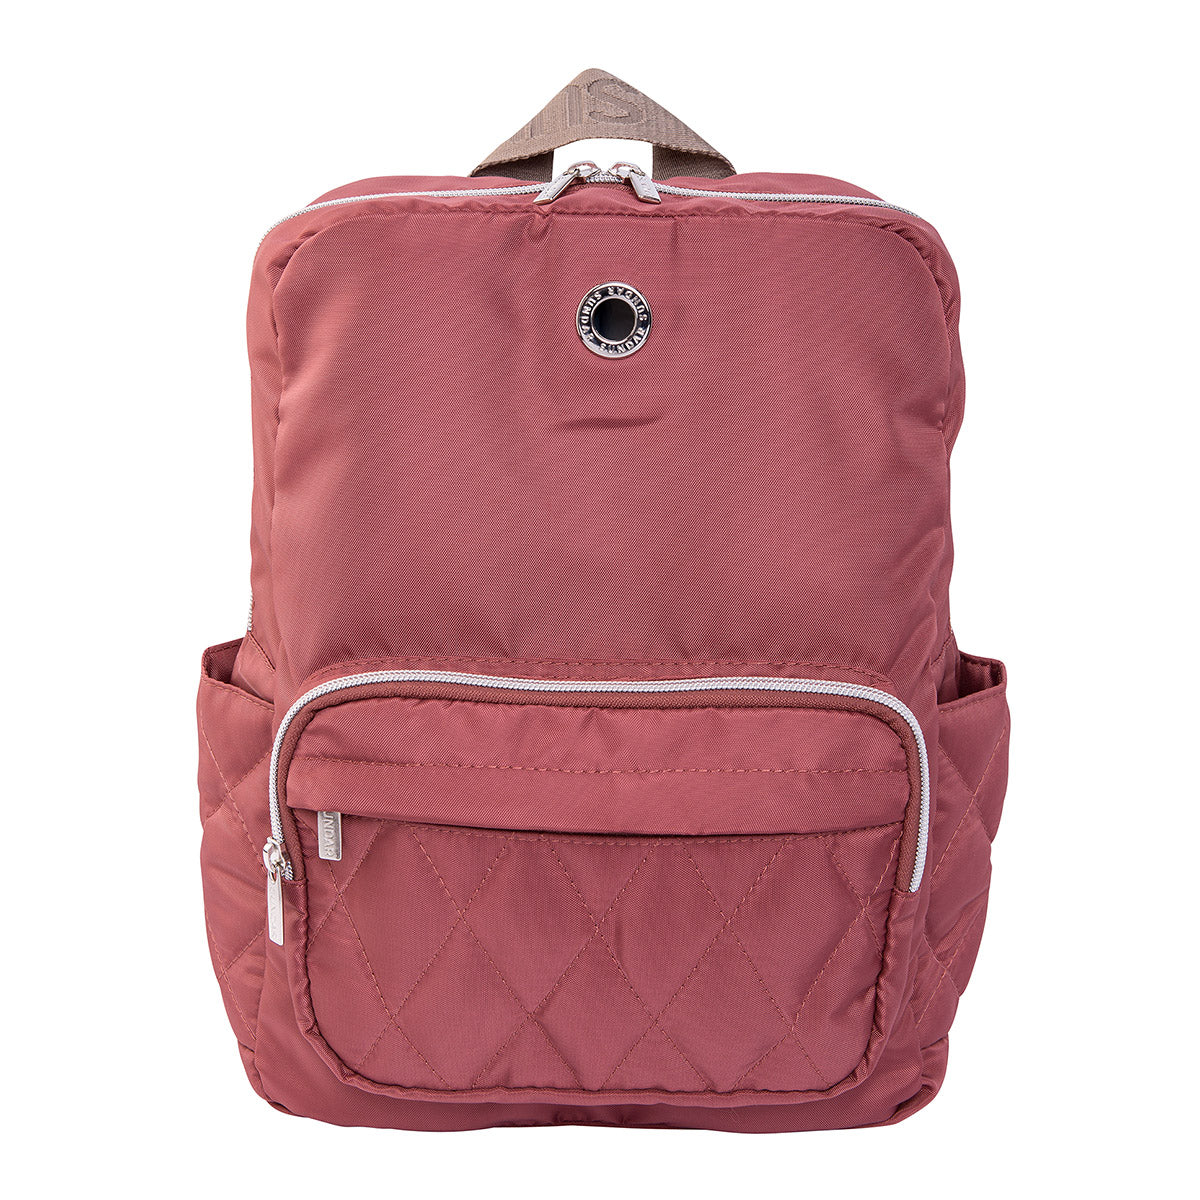 Backpack Grande Burdeos